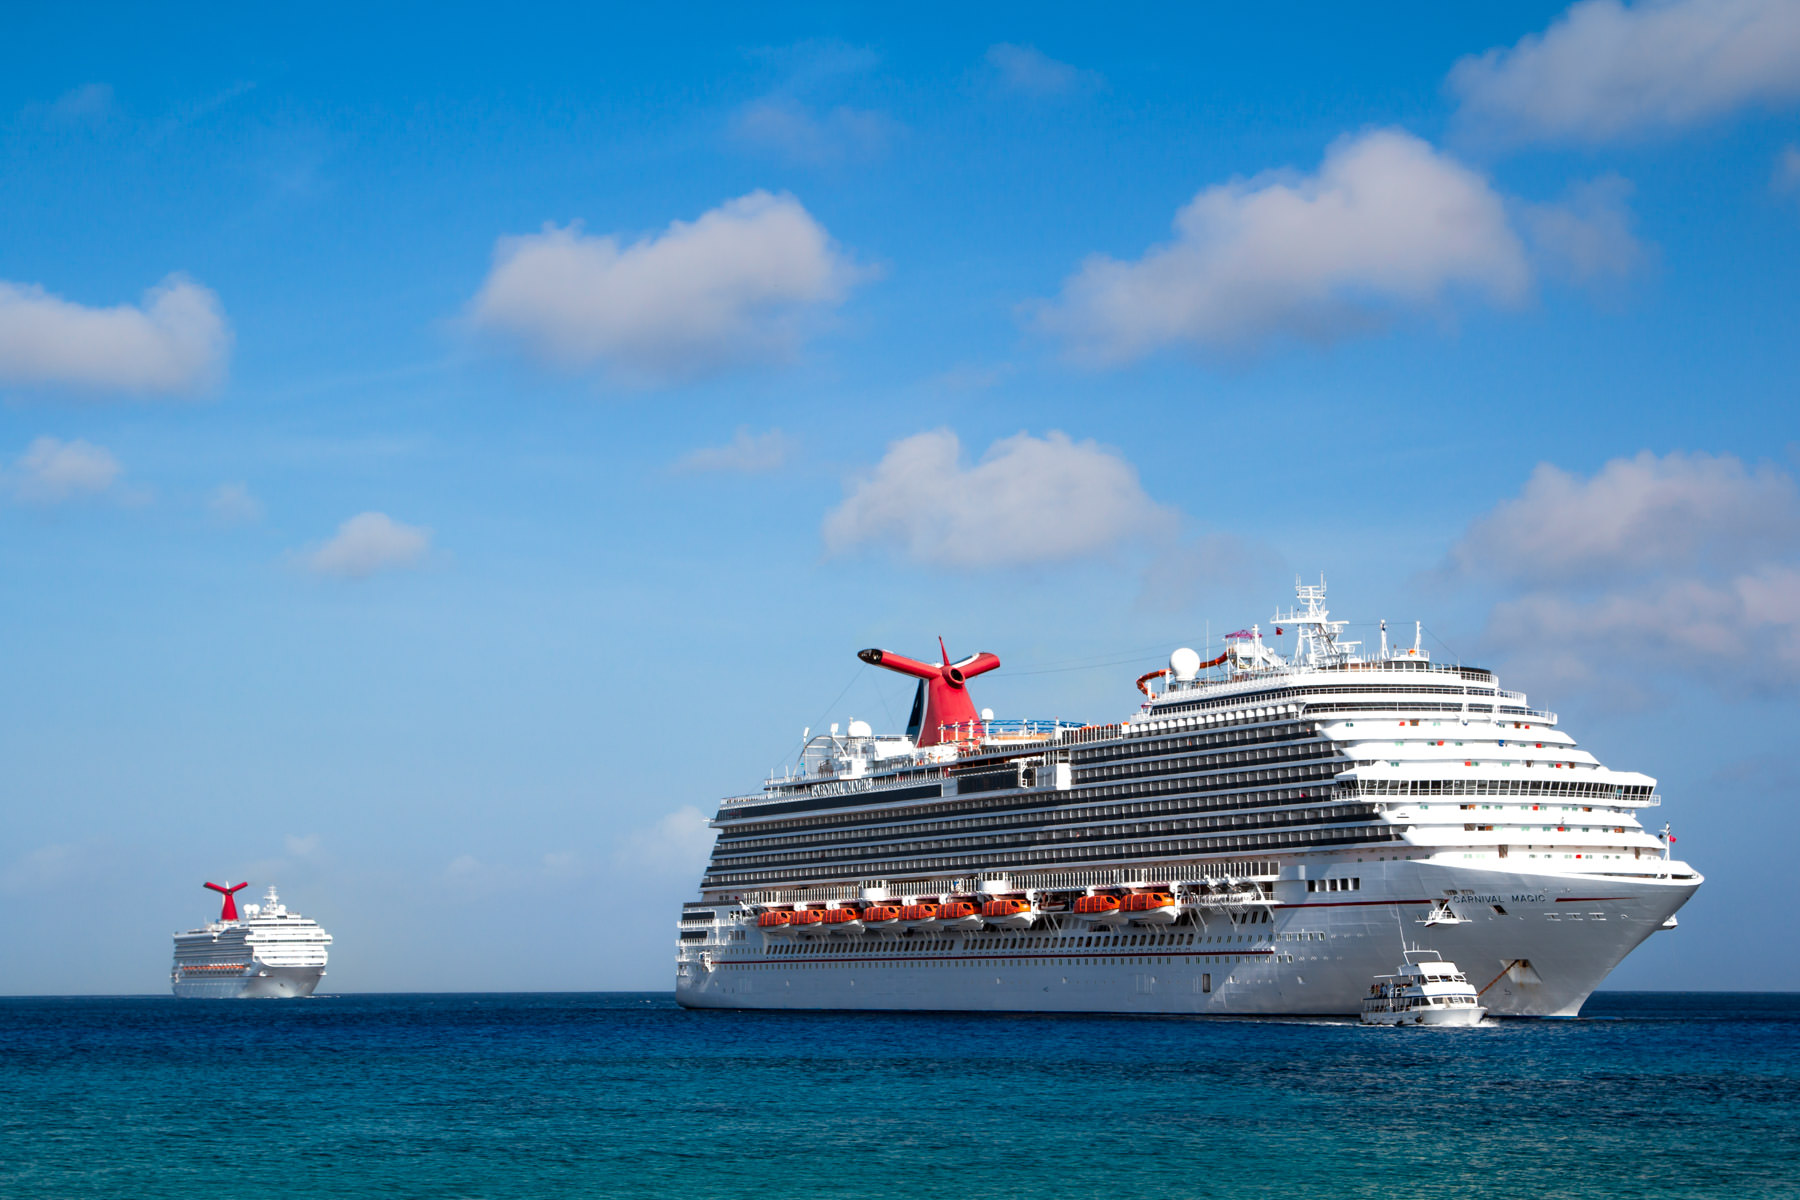 The Carnival Magic and the Carnival Liberty off the coast of George Town, Grand Cayman.